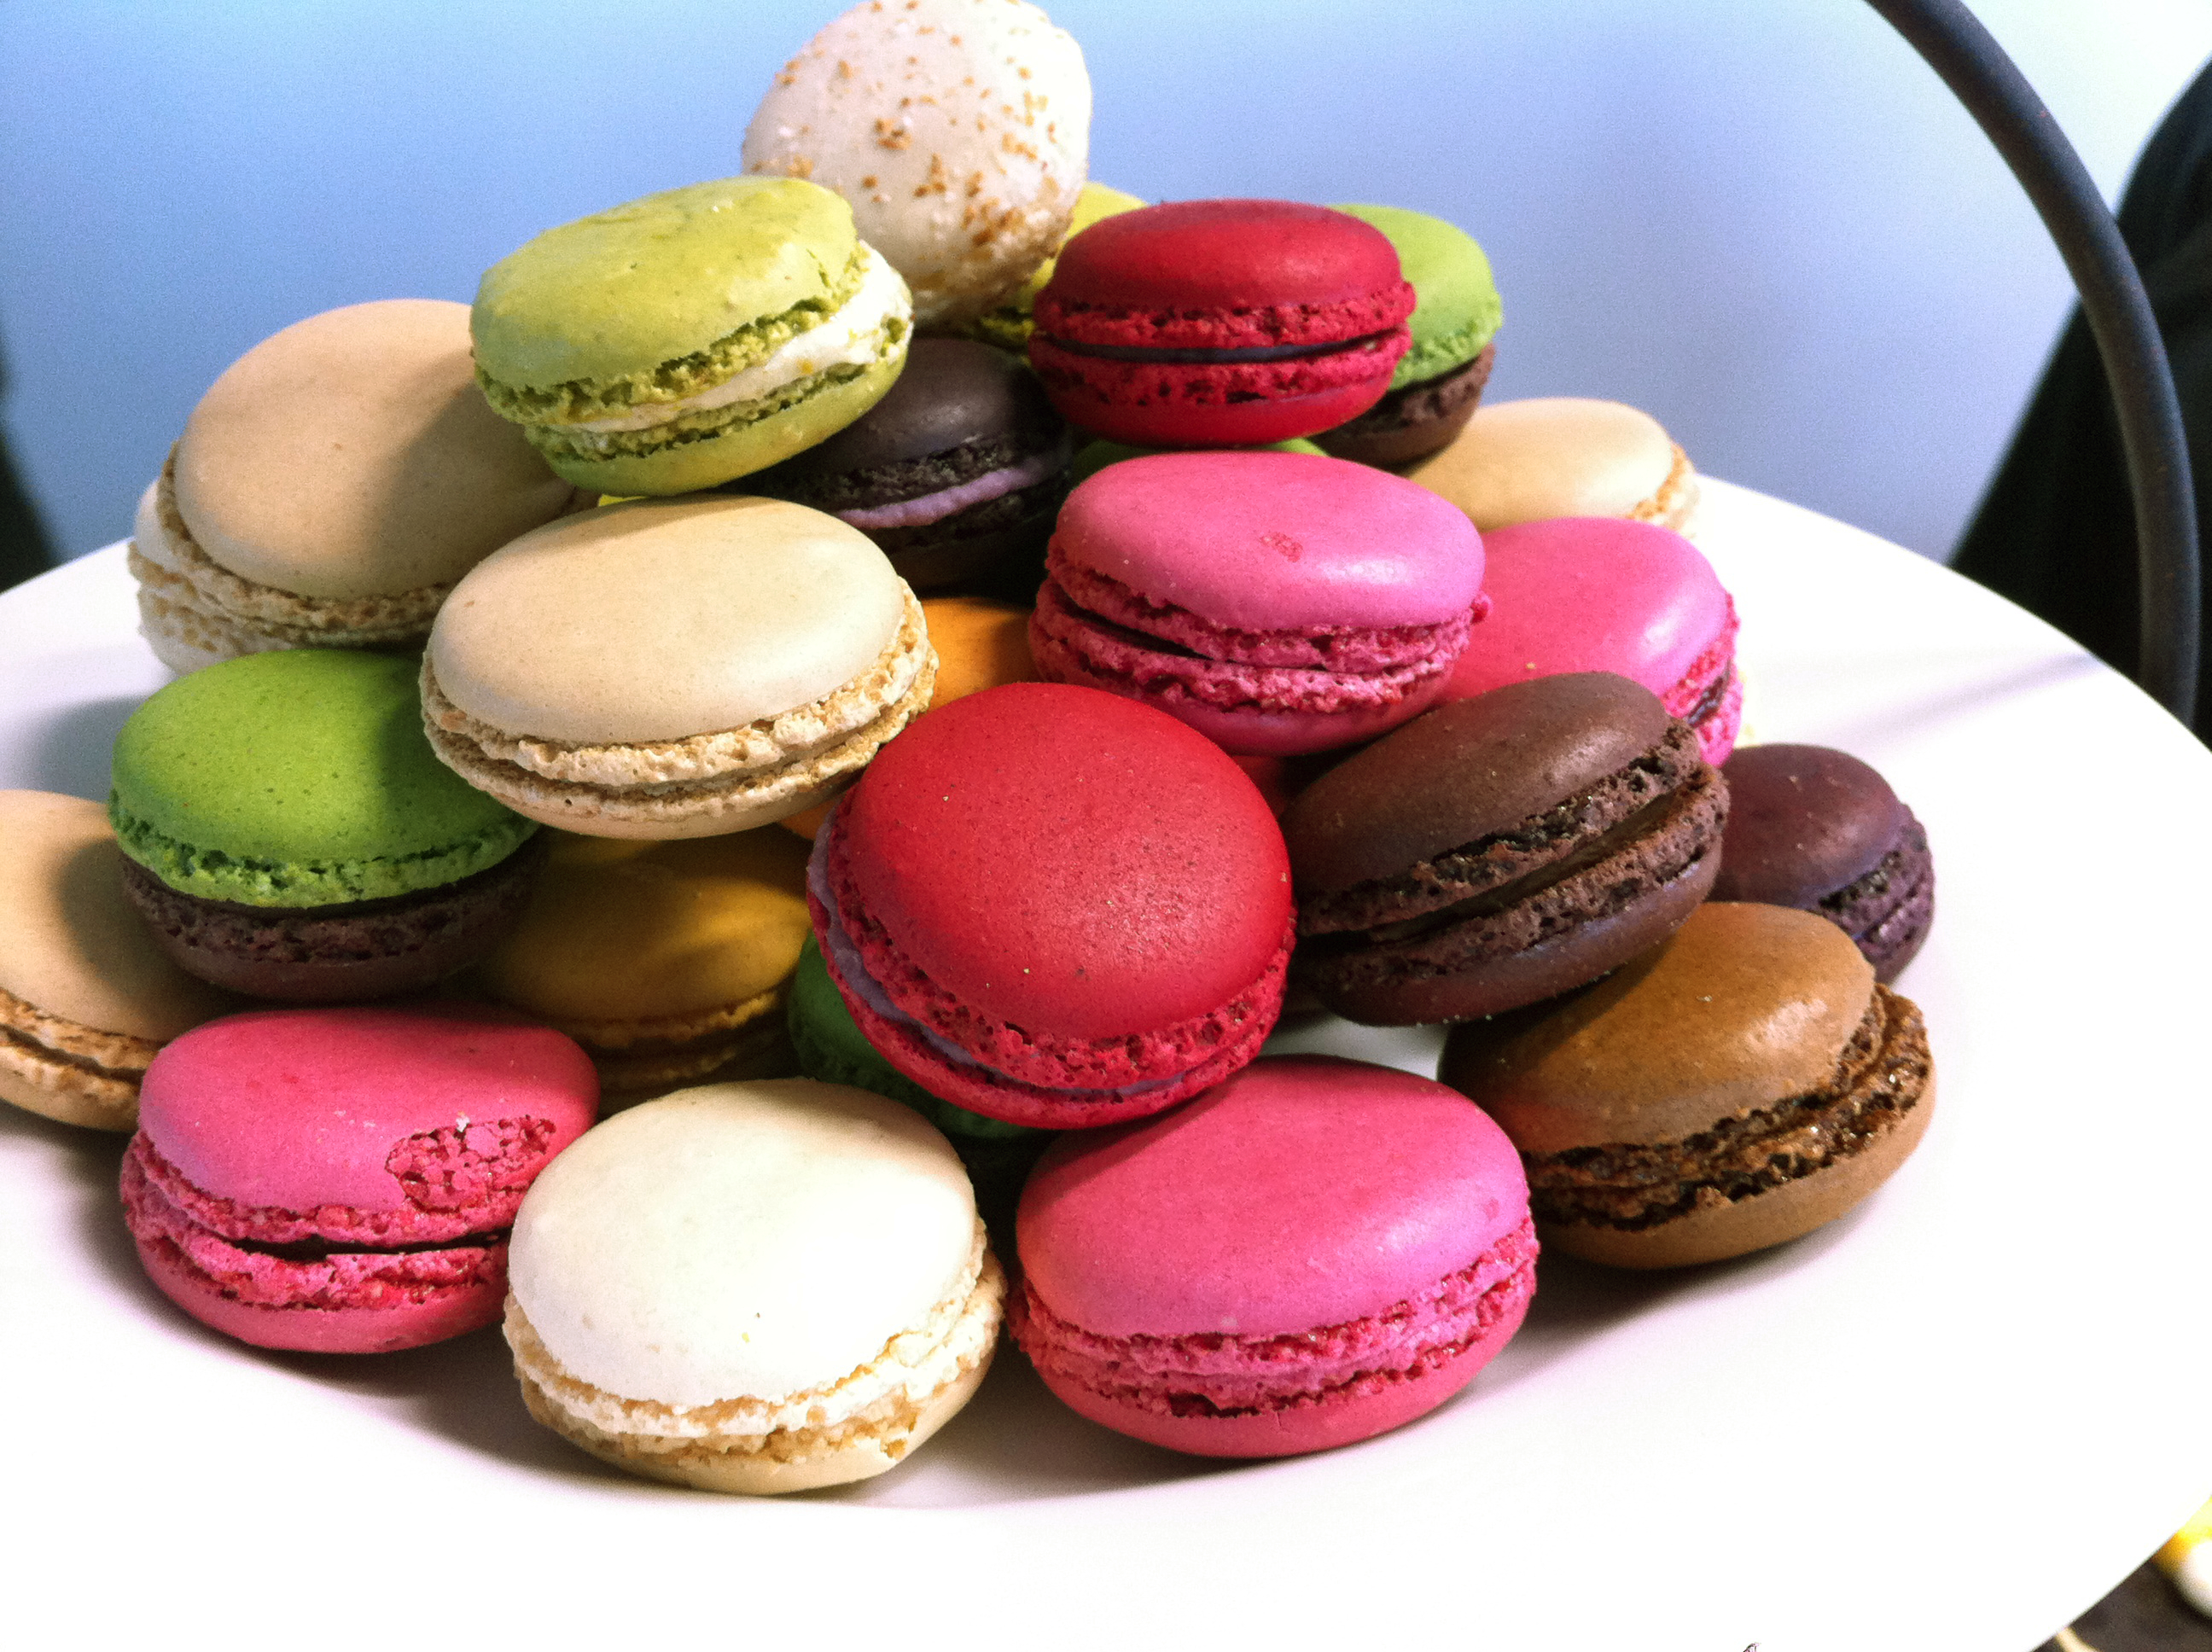 https://upload.wikimedia.org/wikipedia/commons/c/cd/Macarons%2C_French_made_mini_cakes.JPG